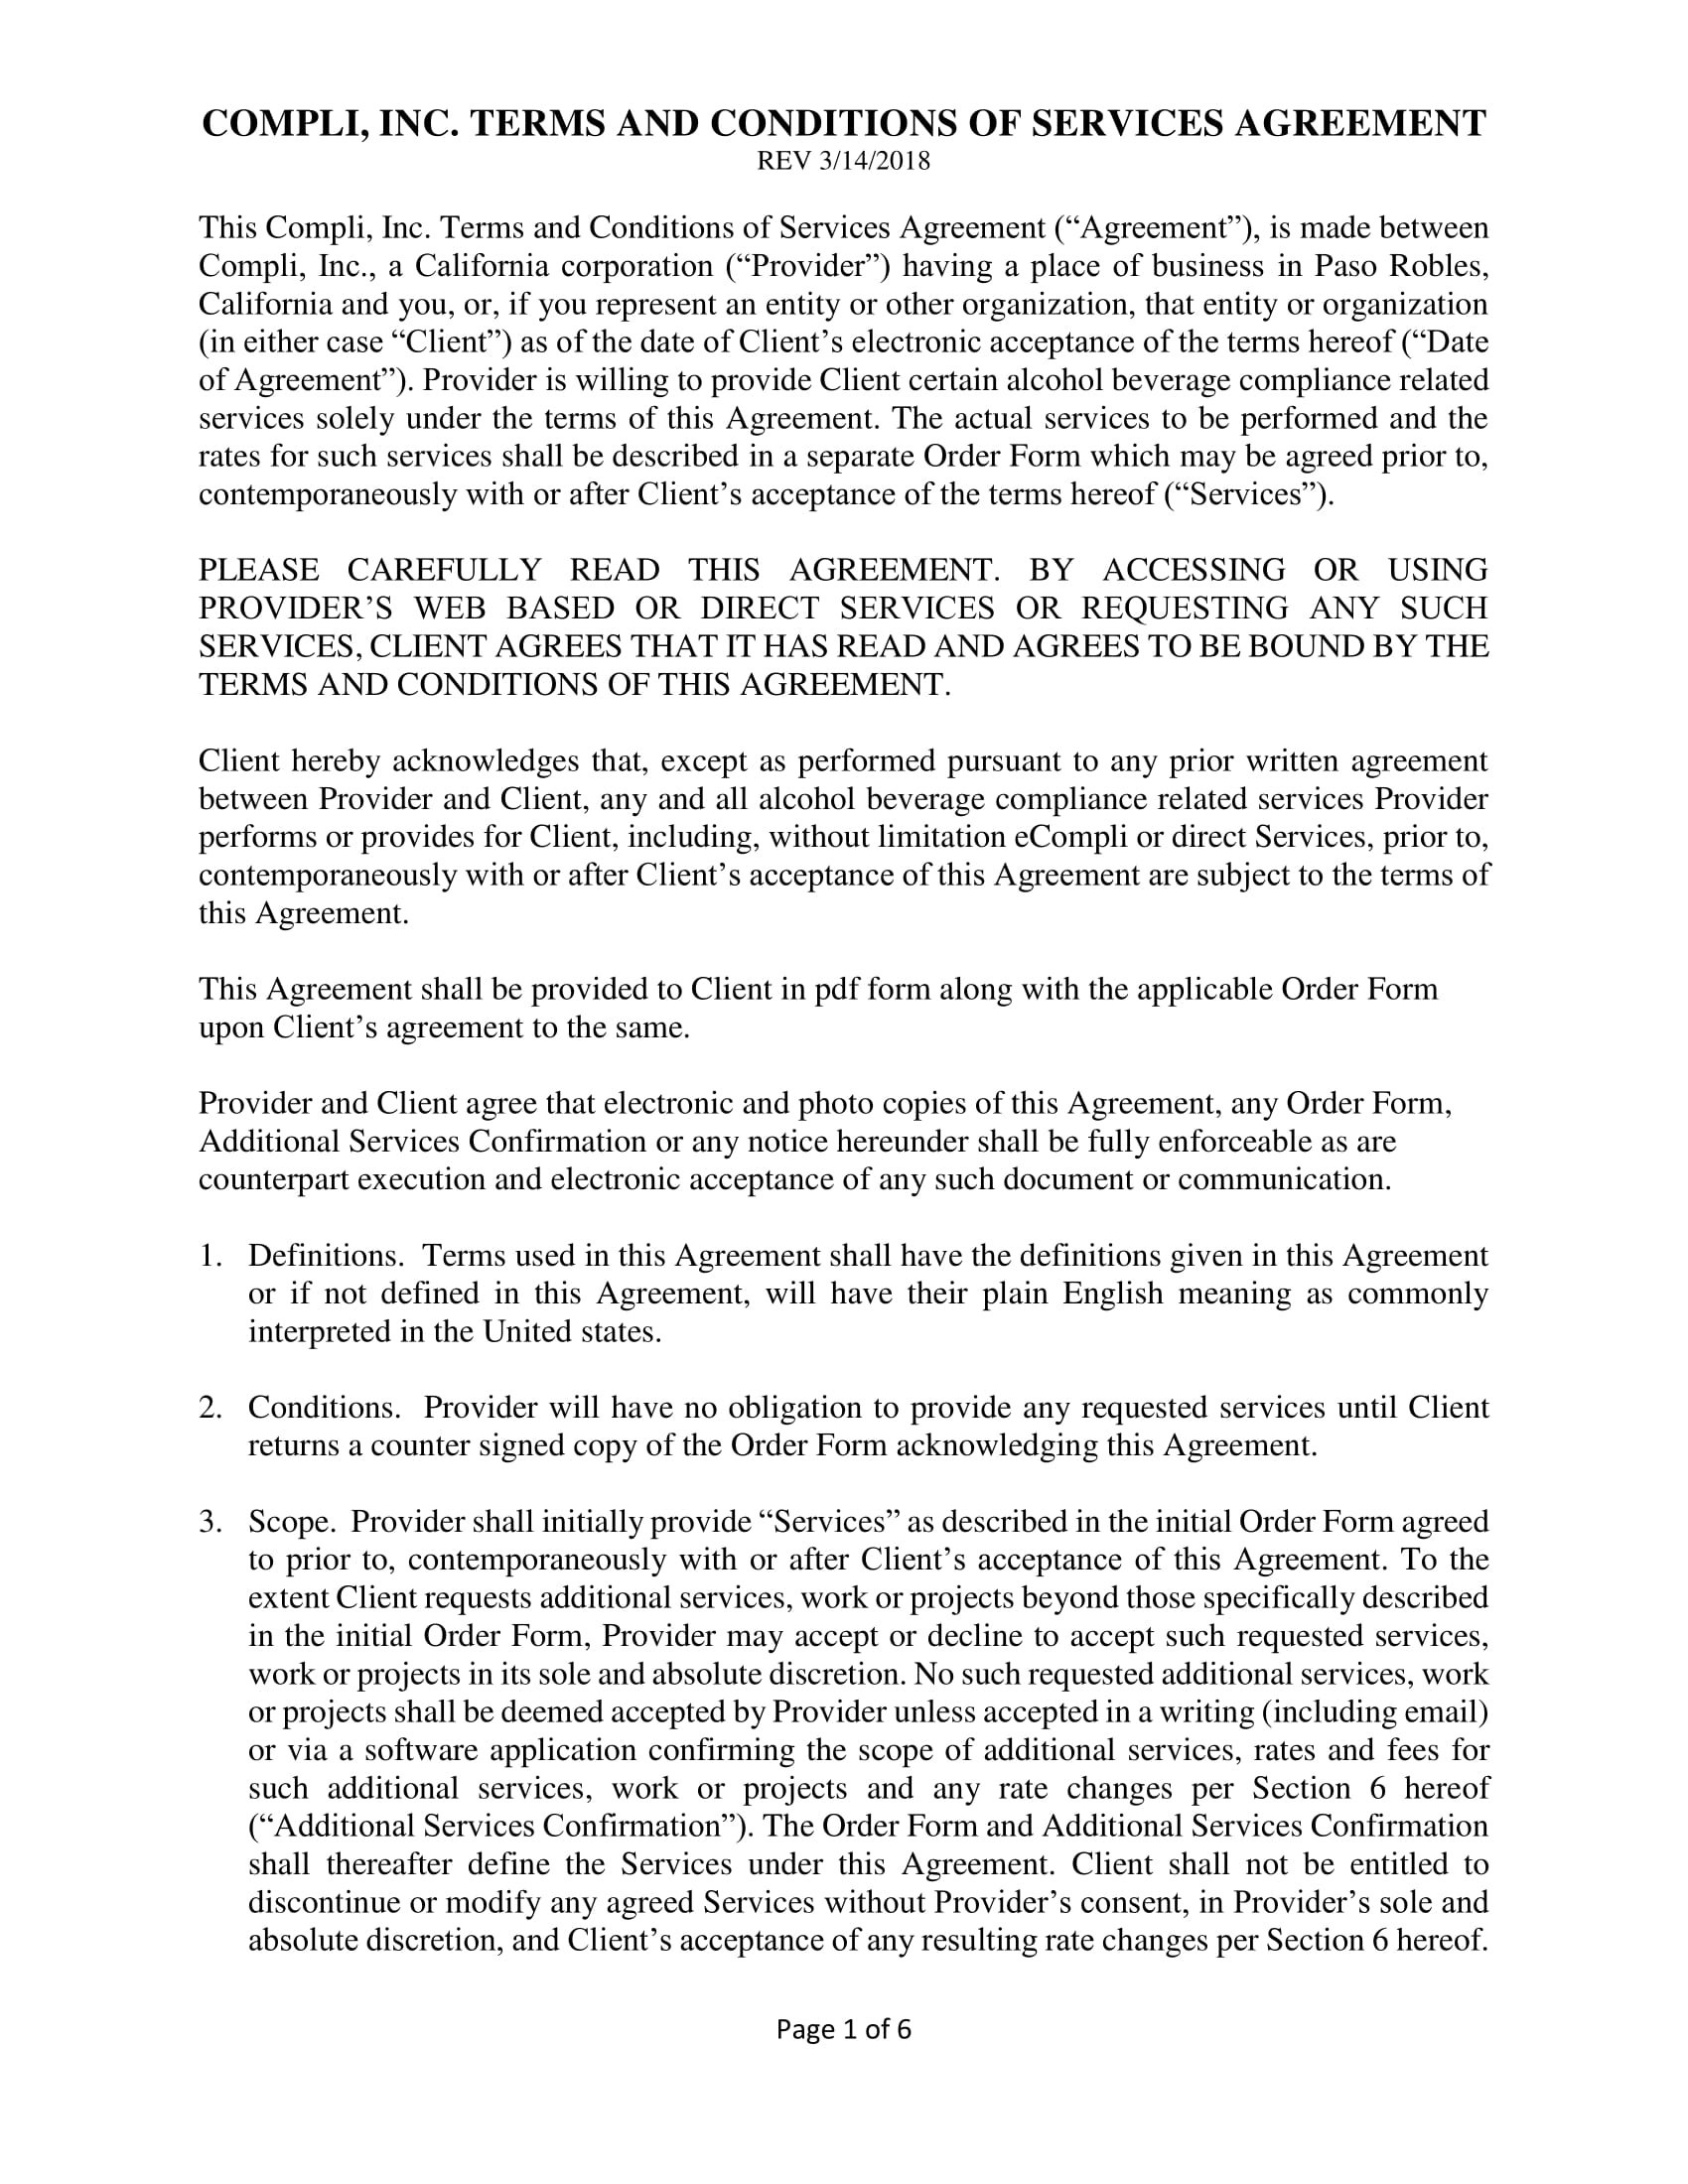 Service Agreement Contract Template Examples  Pdf Word Google In Client Service Agreement Template